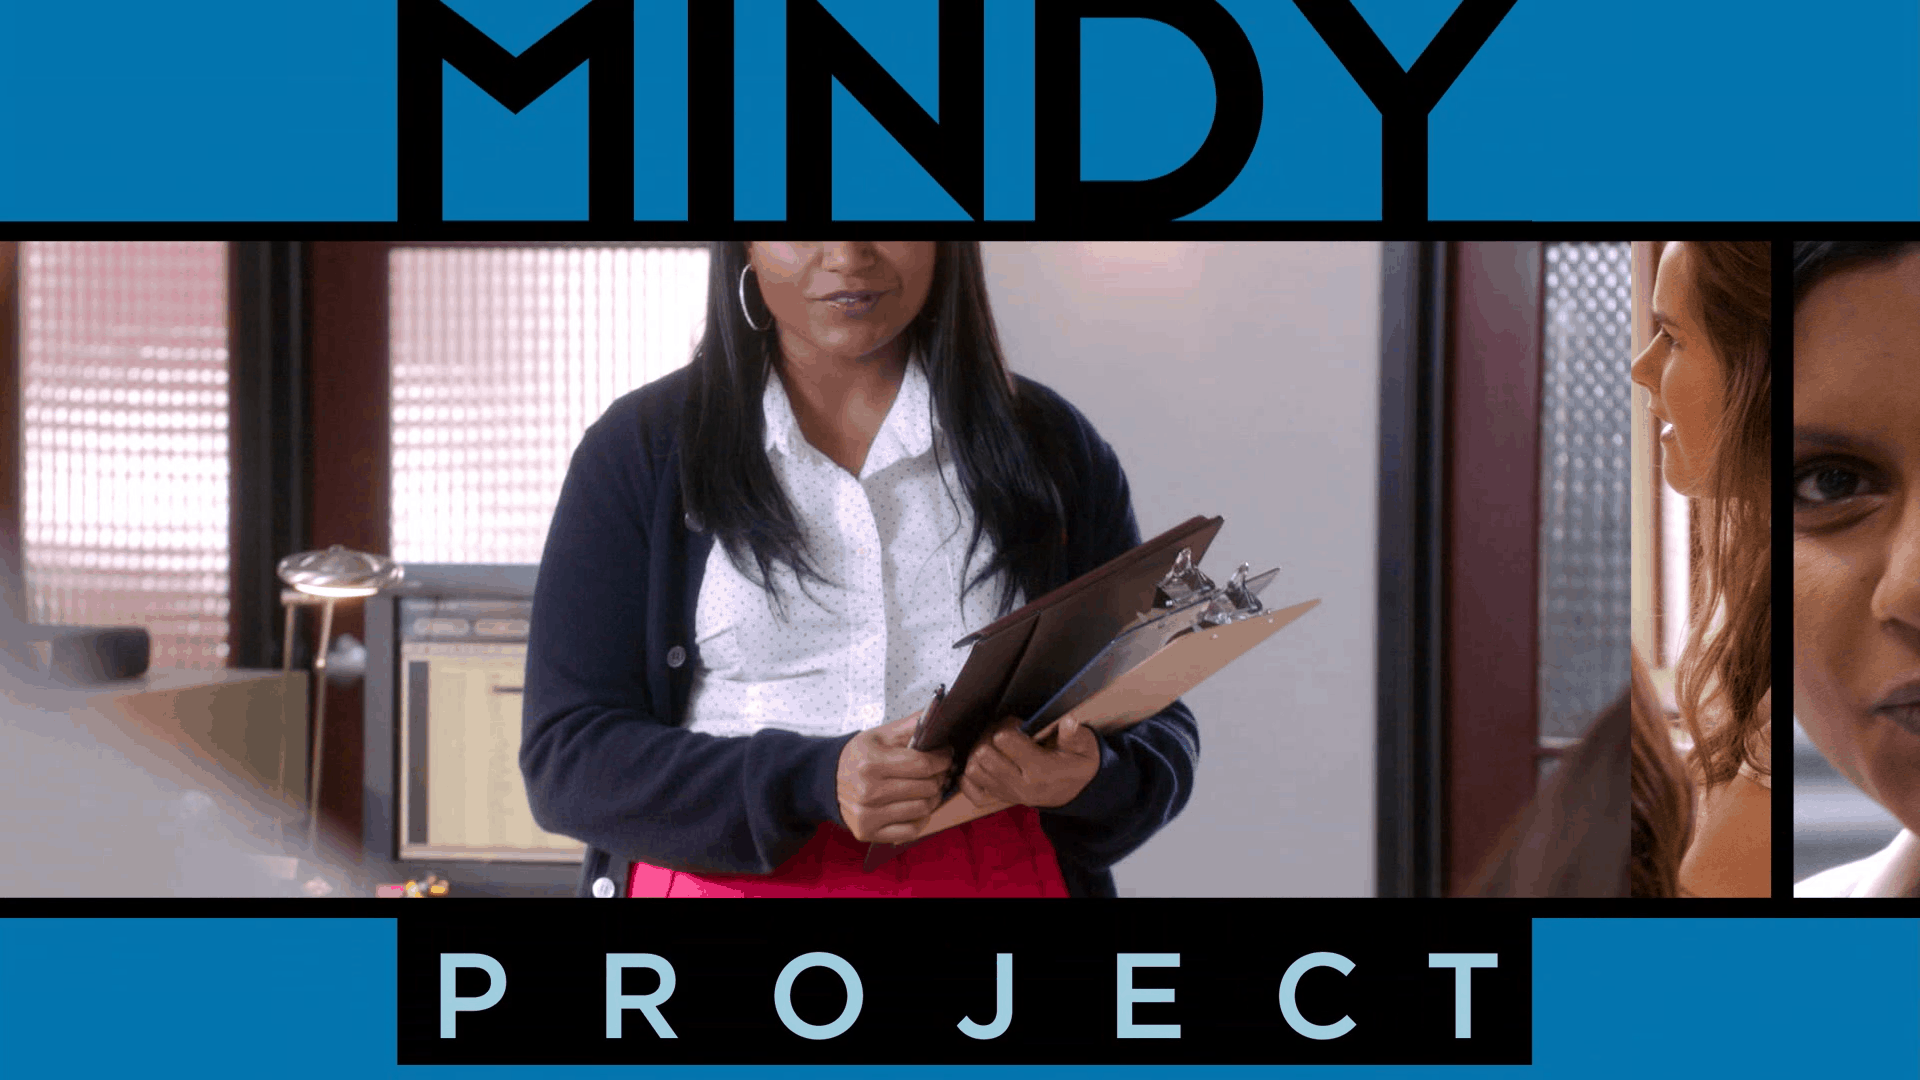 Mindy Project title